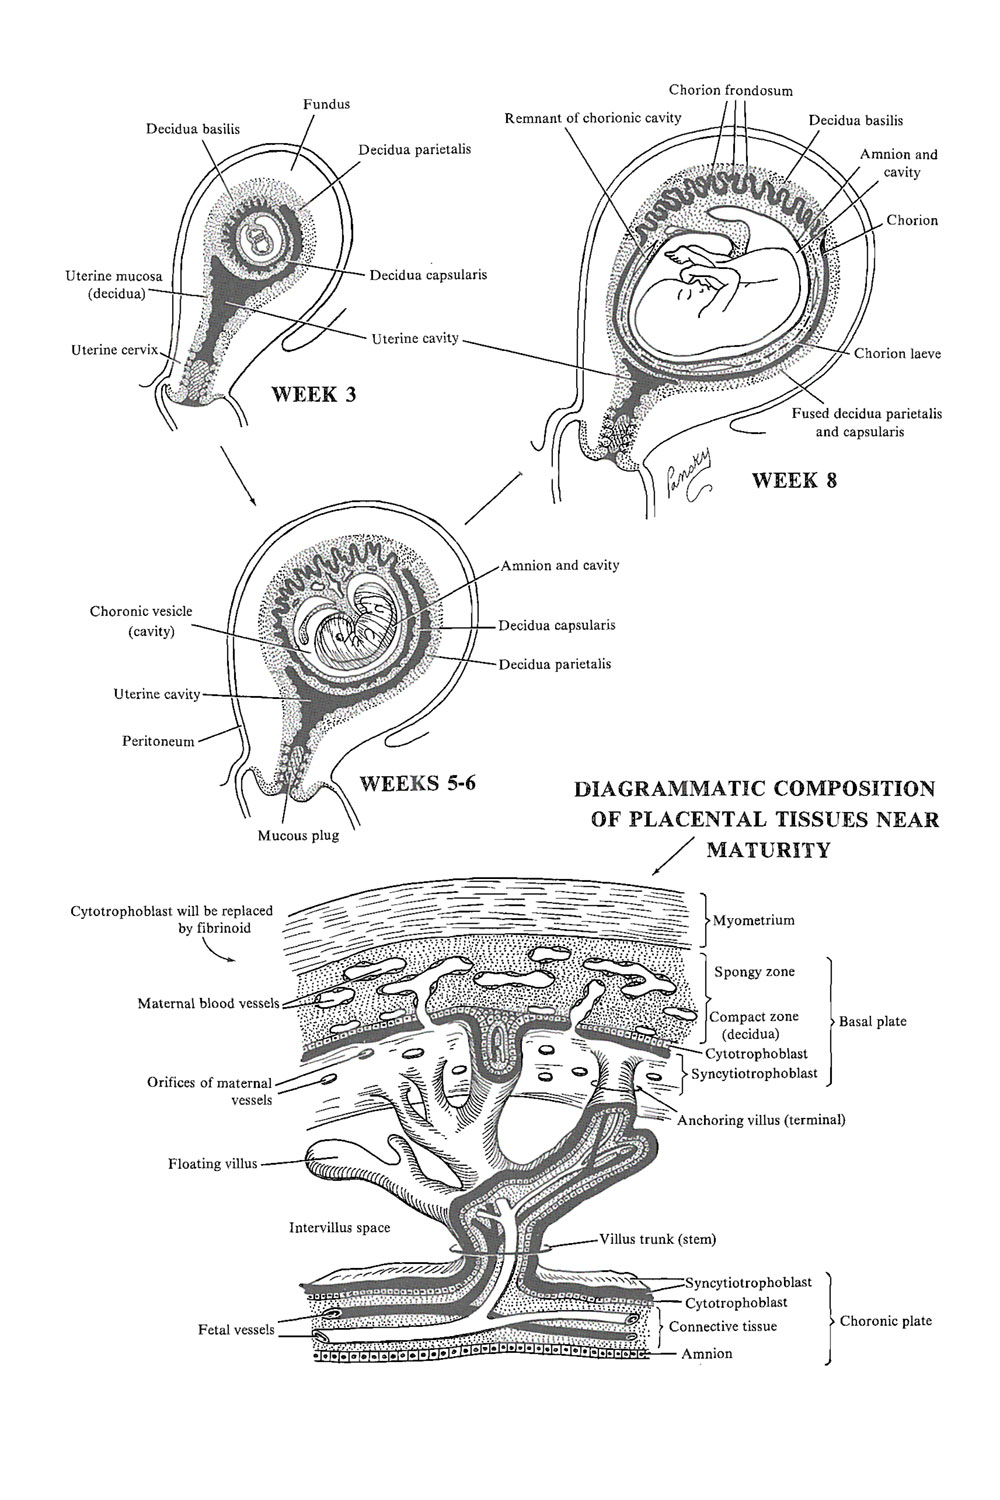 the placenta: decidual formation: image #1